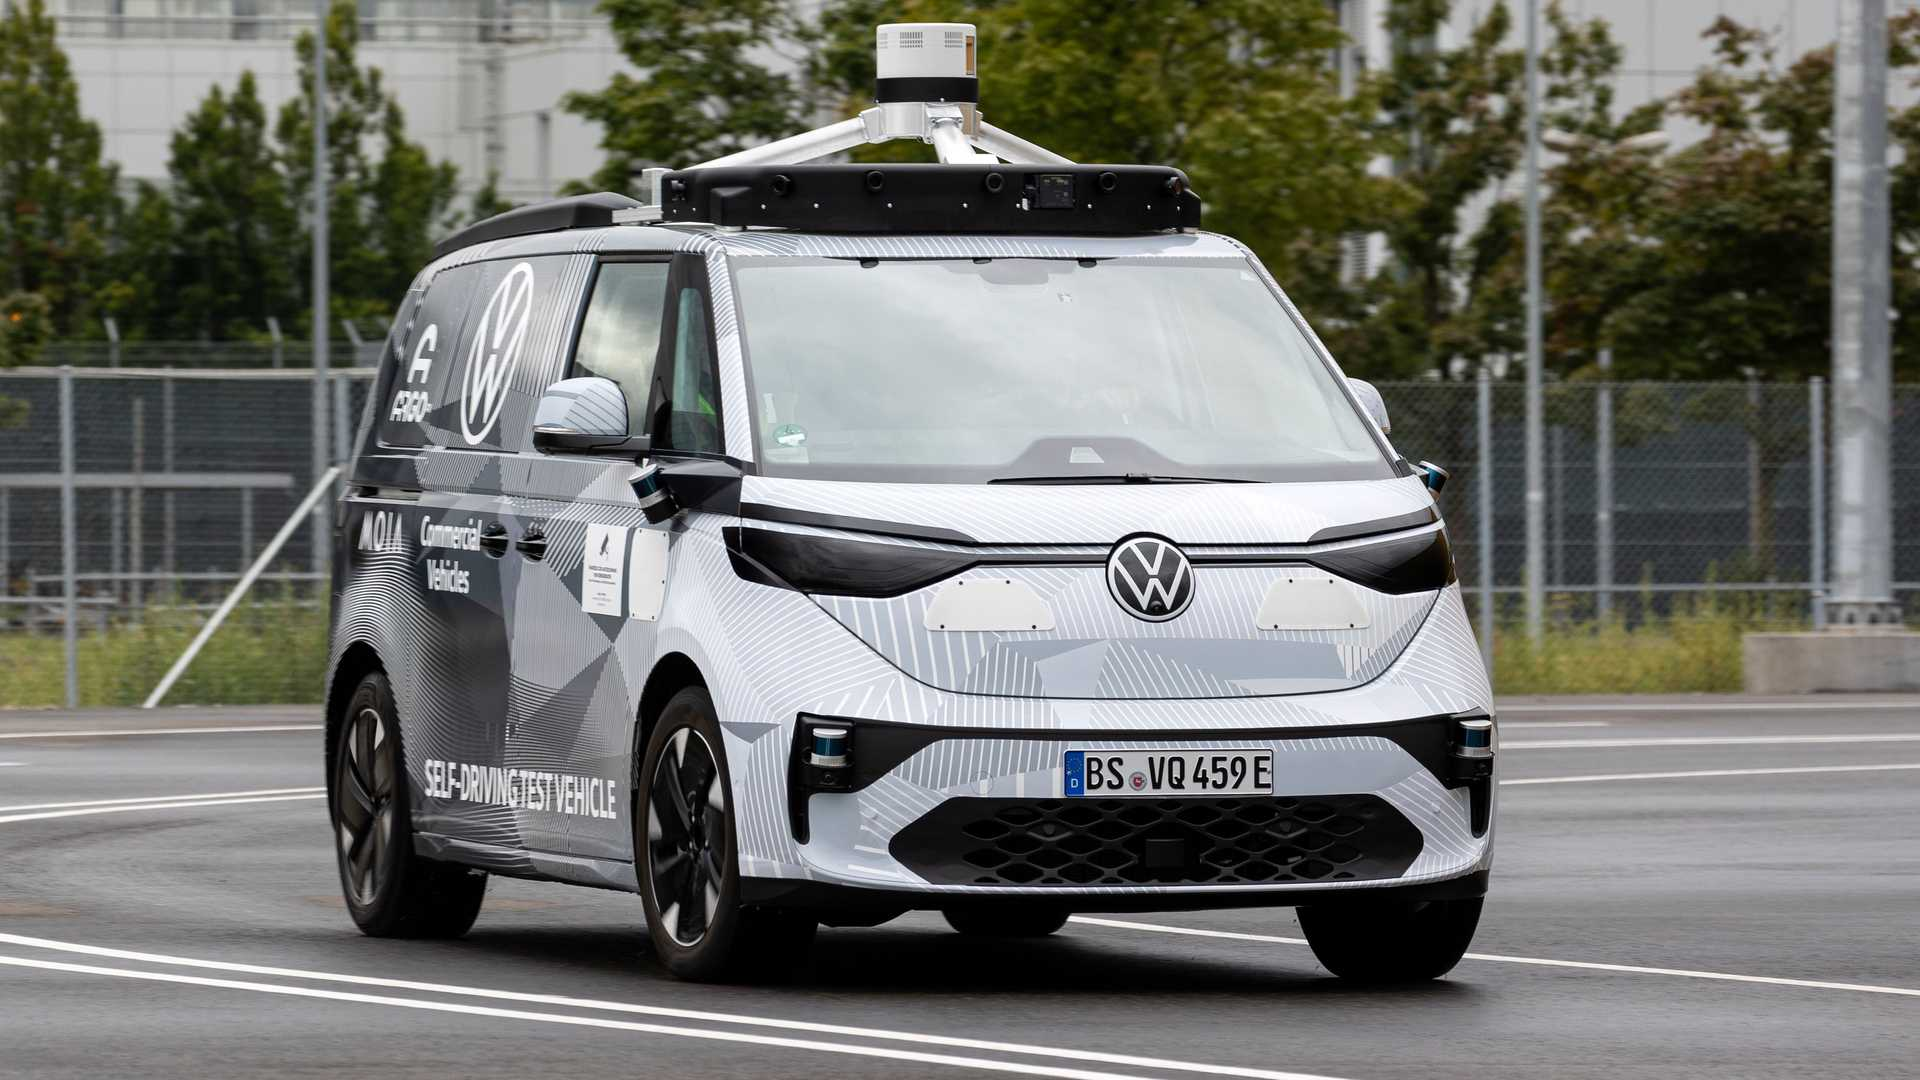 Volkswagen's ID.Buzz electric minivan appears as a self-driving prototype